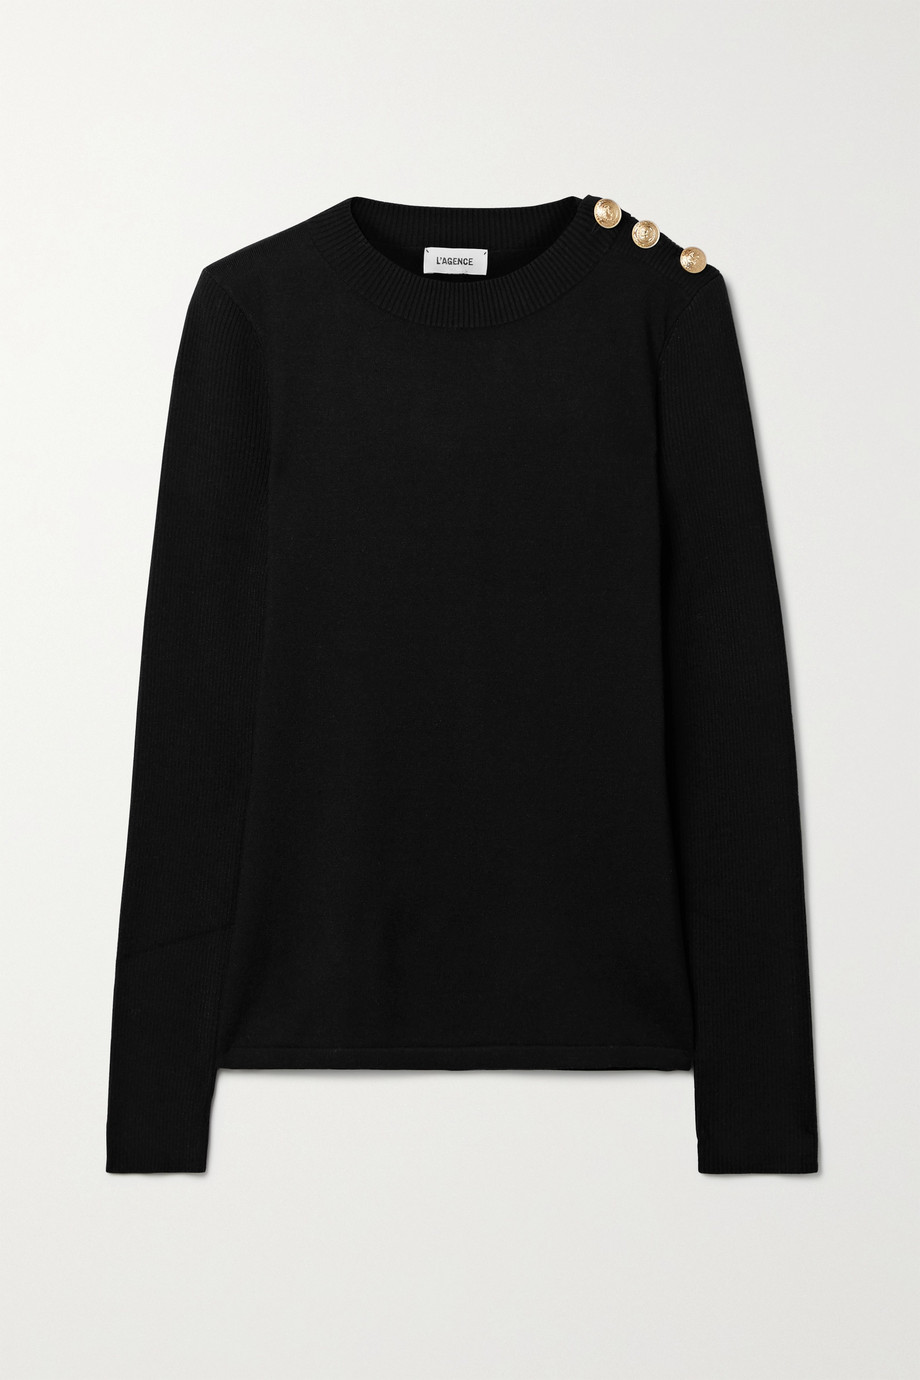 L'Agence Erica button-embellished knitted sweater